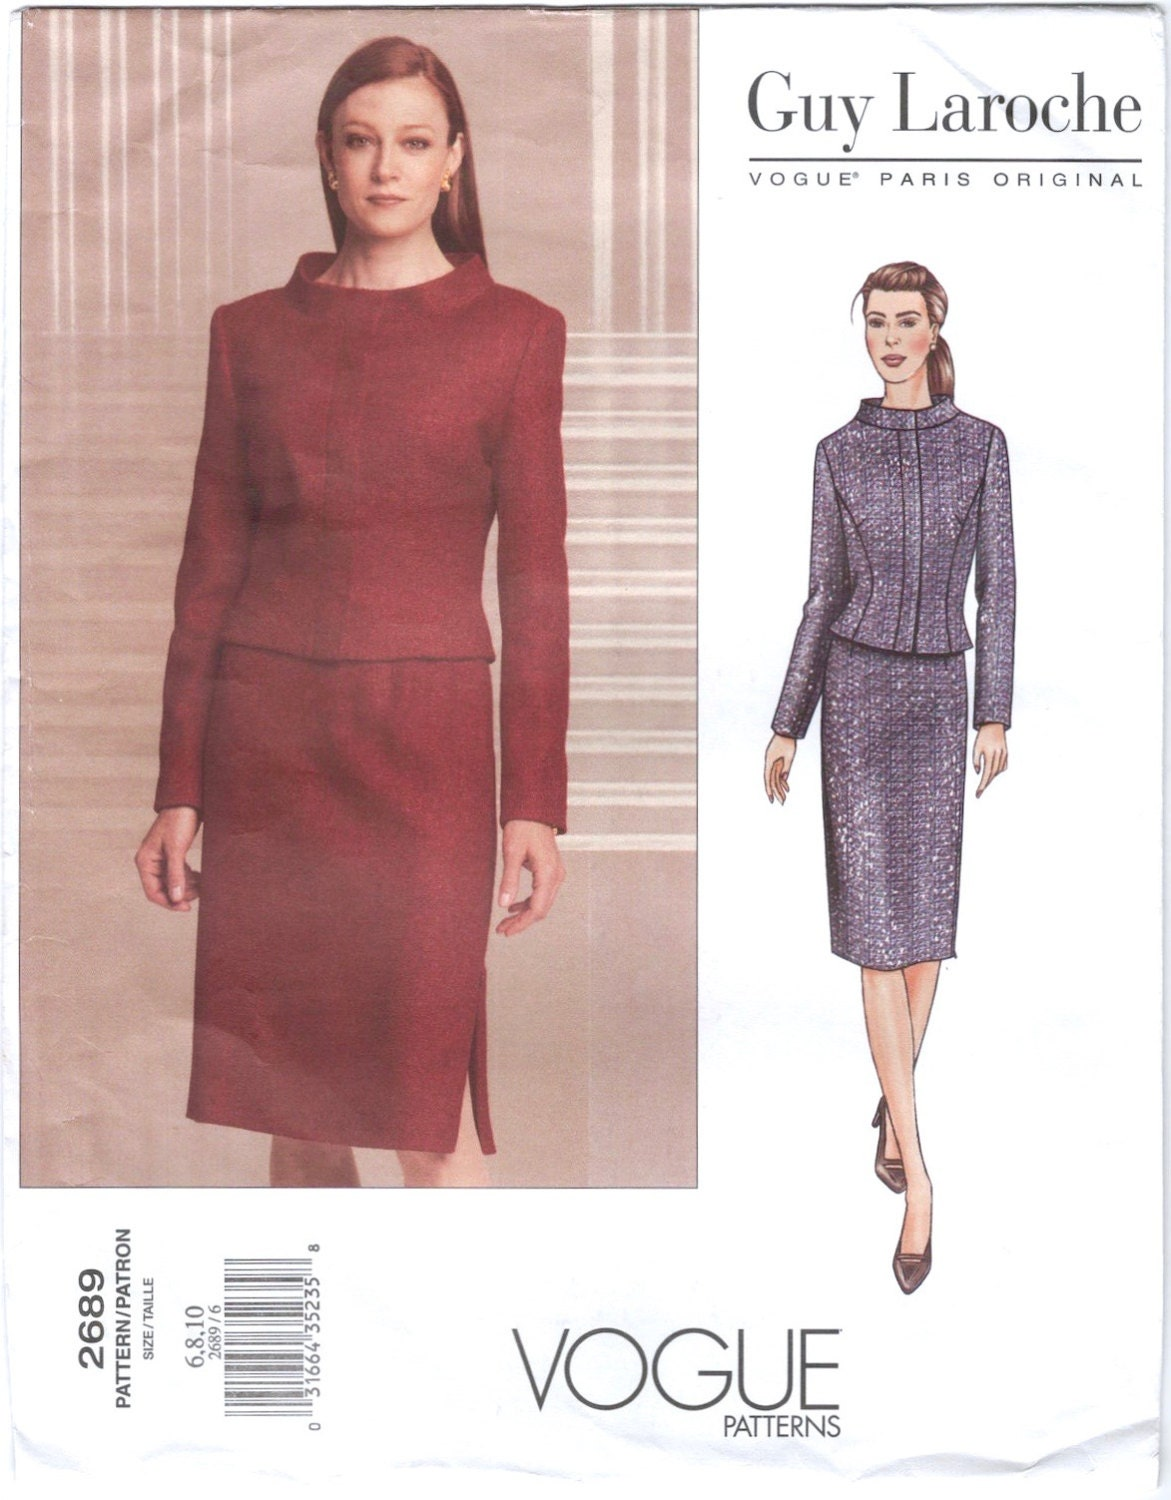 Fall 2001 Mei Xiao Zhou for Guy Laroche skirt suit pattern Vogue 2689